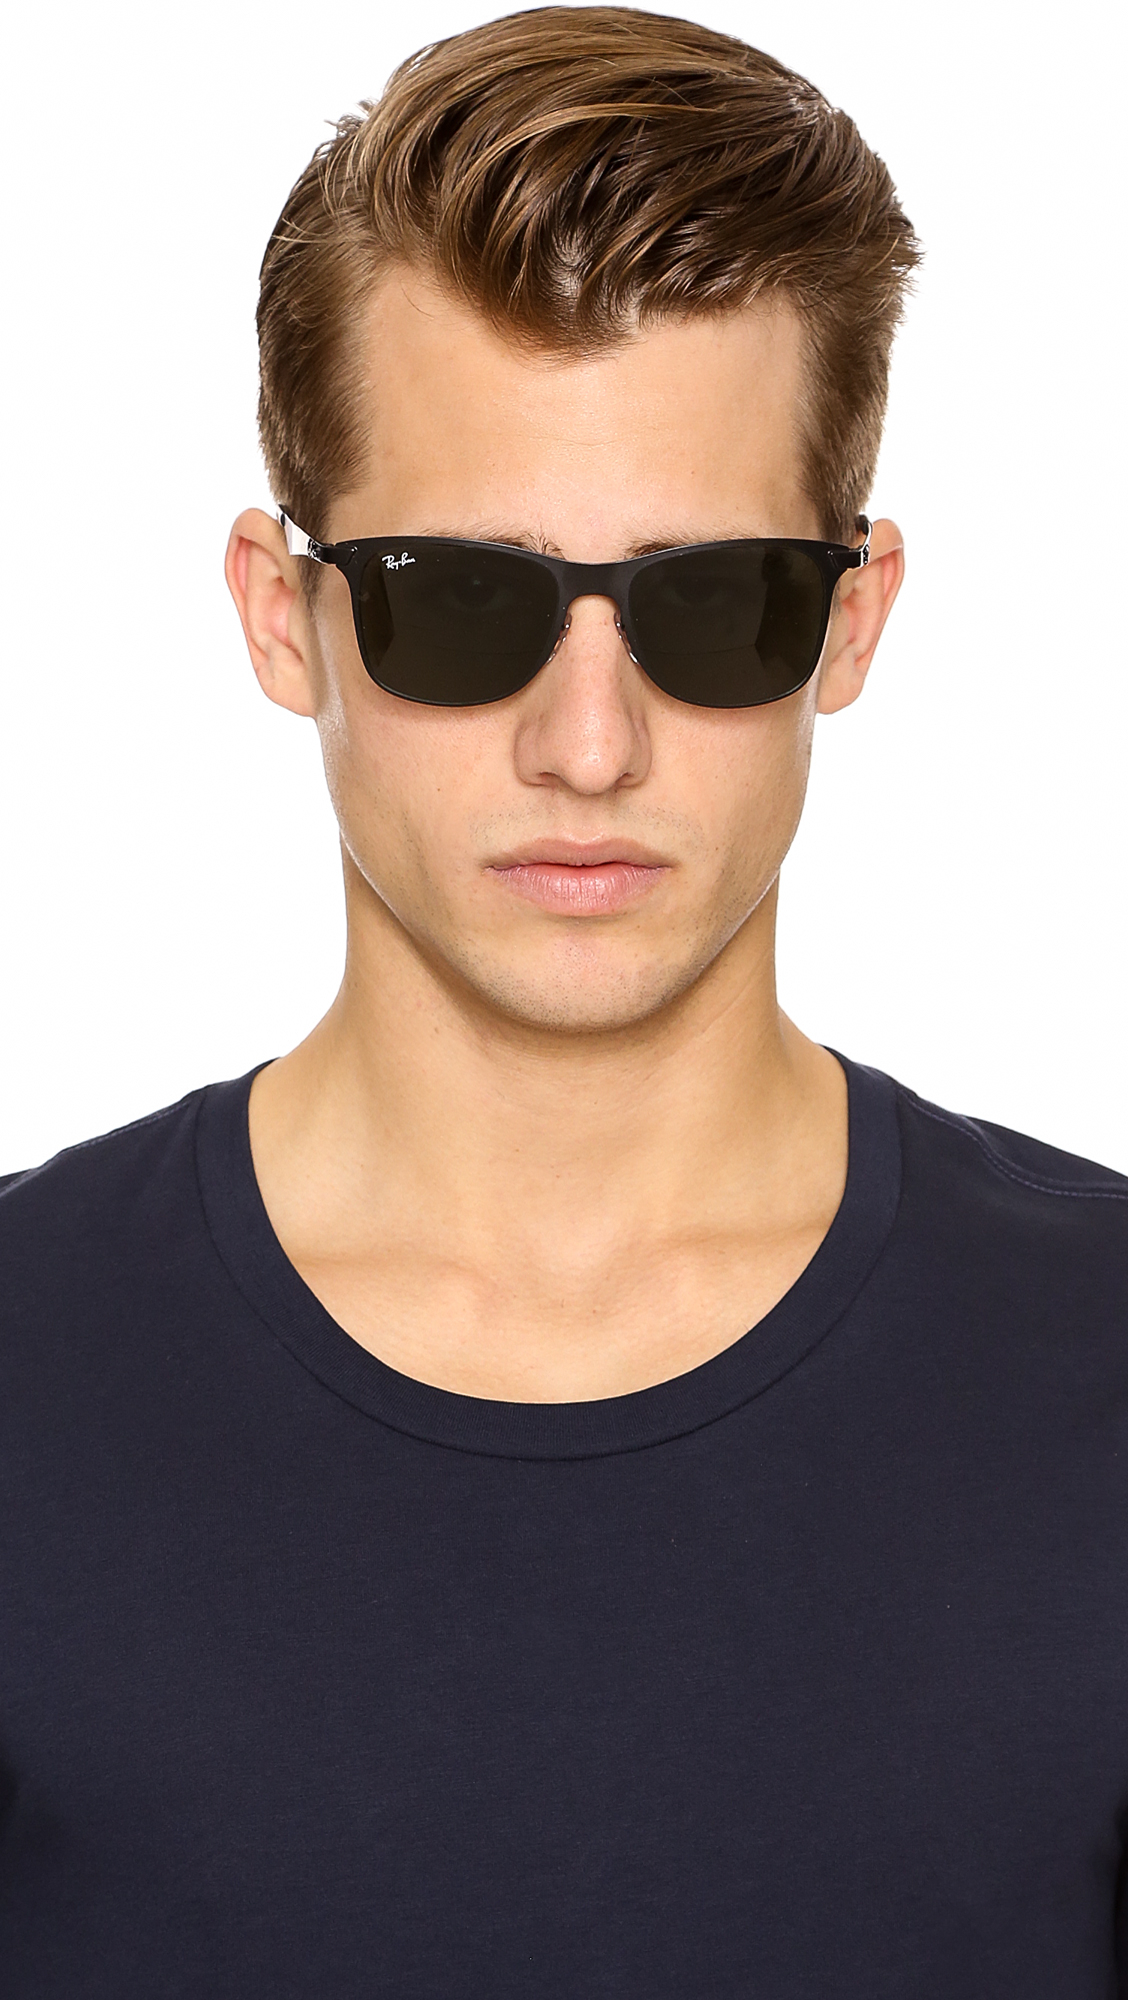 classic ray ban wayfarer sunglasses  Ray-ban Flat Metal Wayfarer Sunglasses in Black for Men